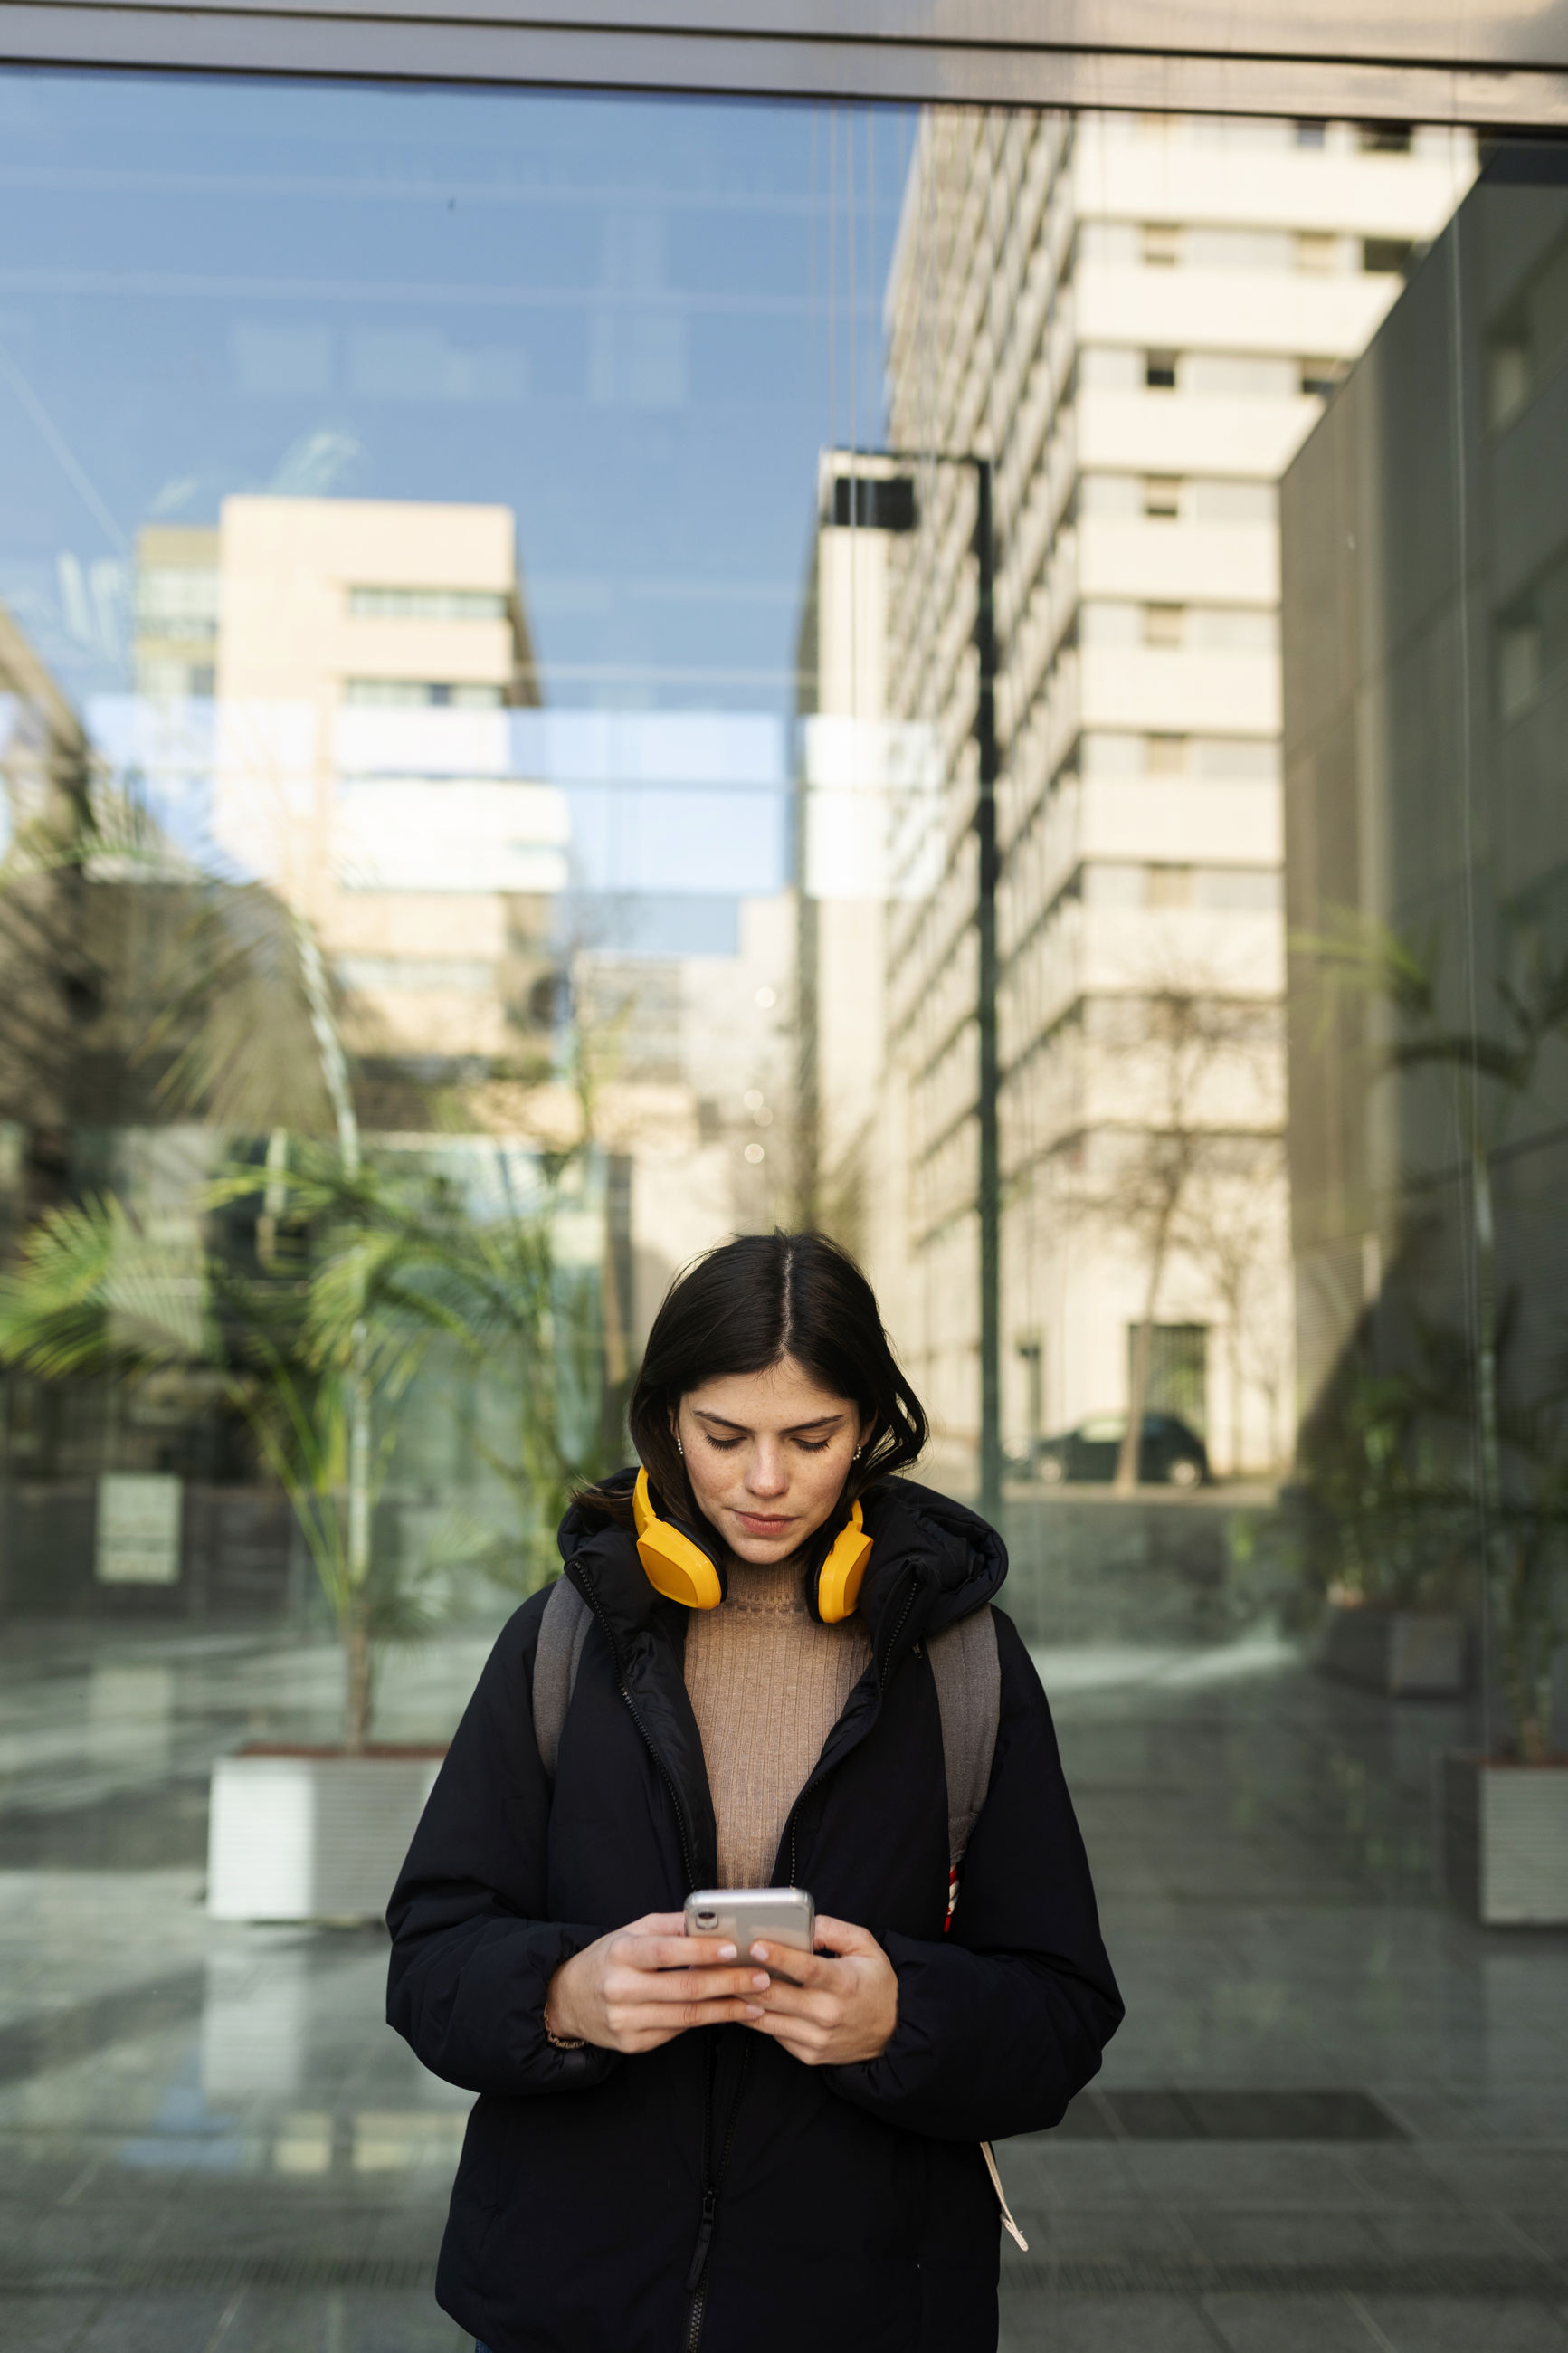 YOUNG WOMAN USING PHONE IN CITY